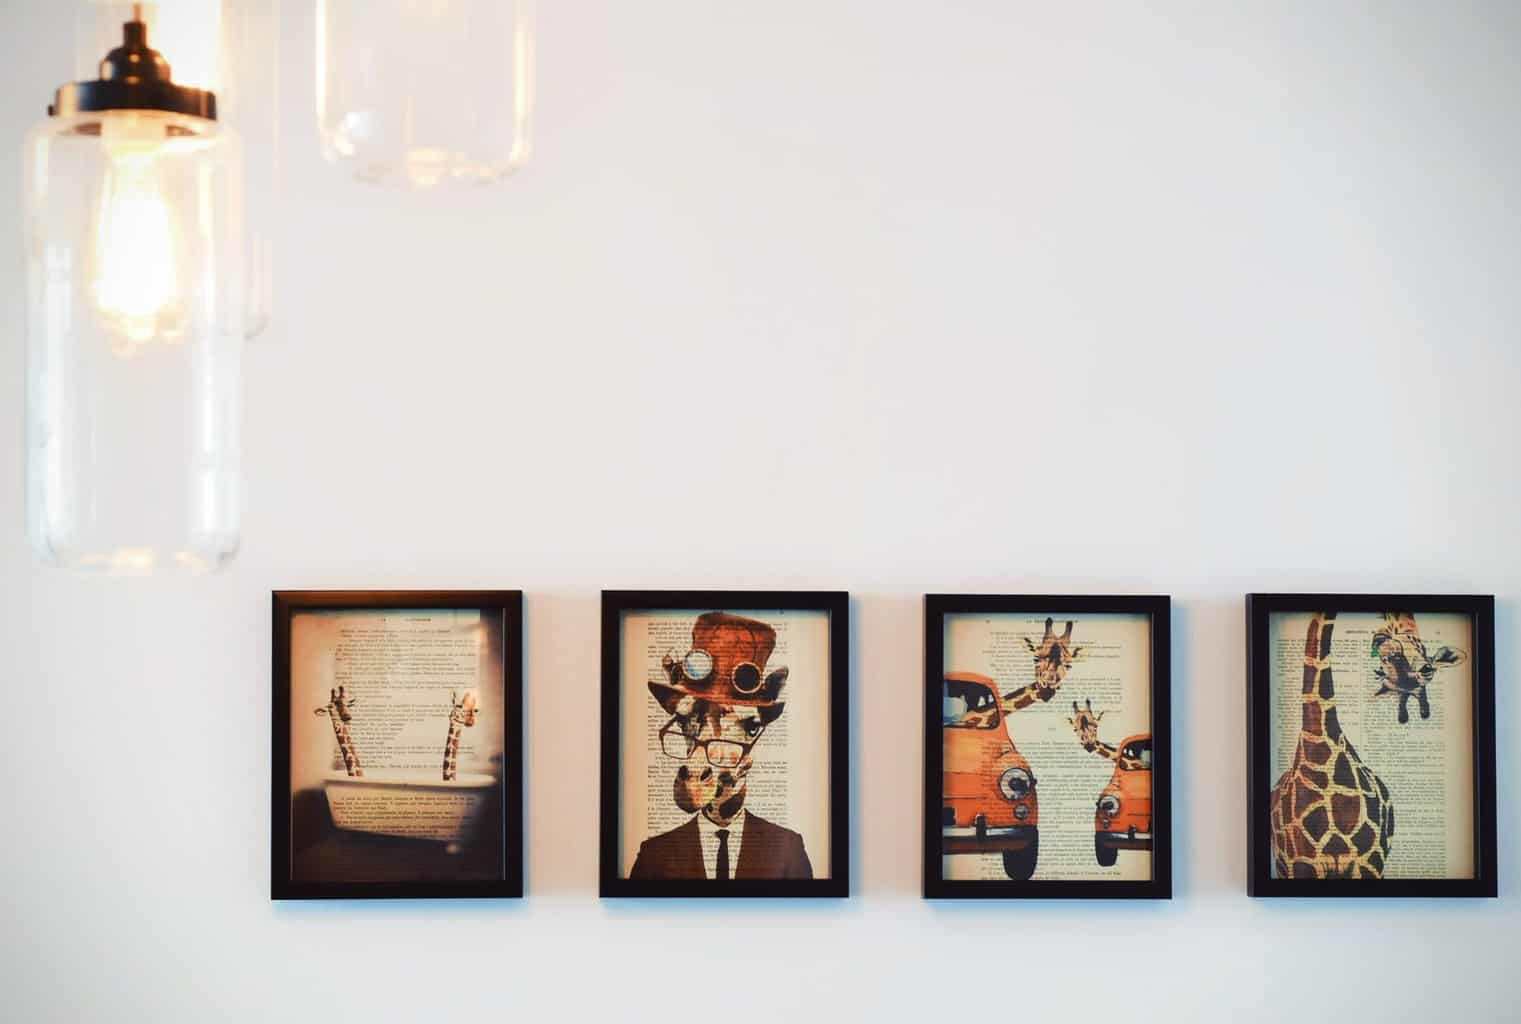 3 Reasons To Decorate Your Home with Wall Art